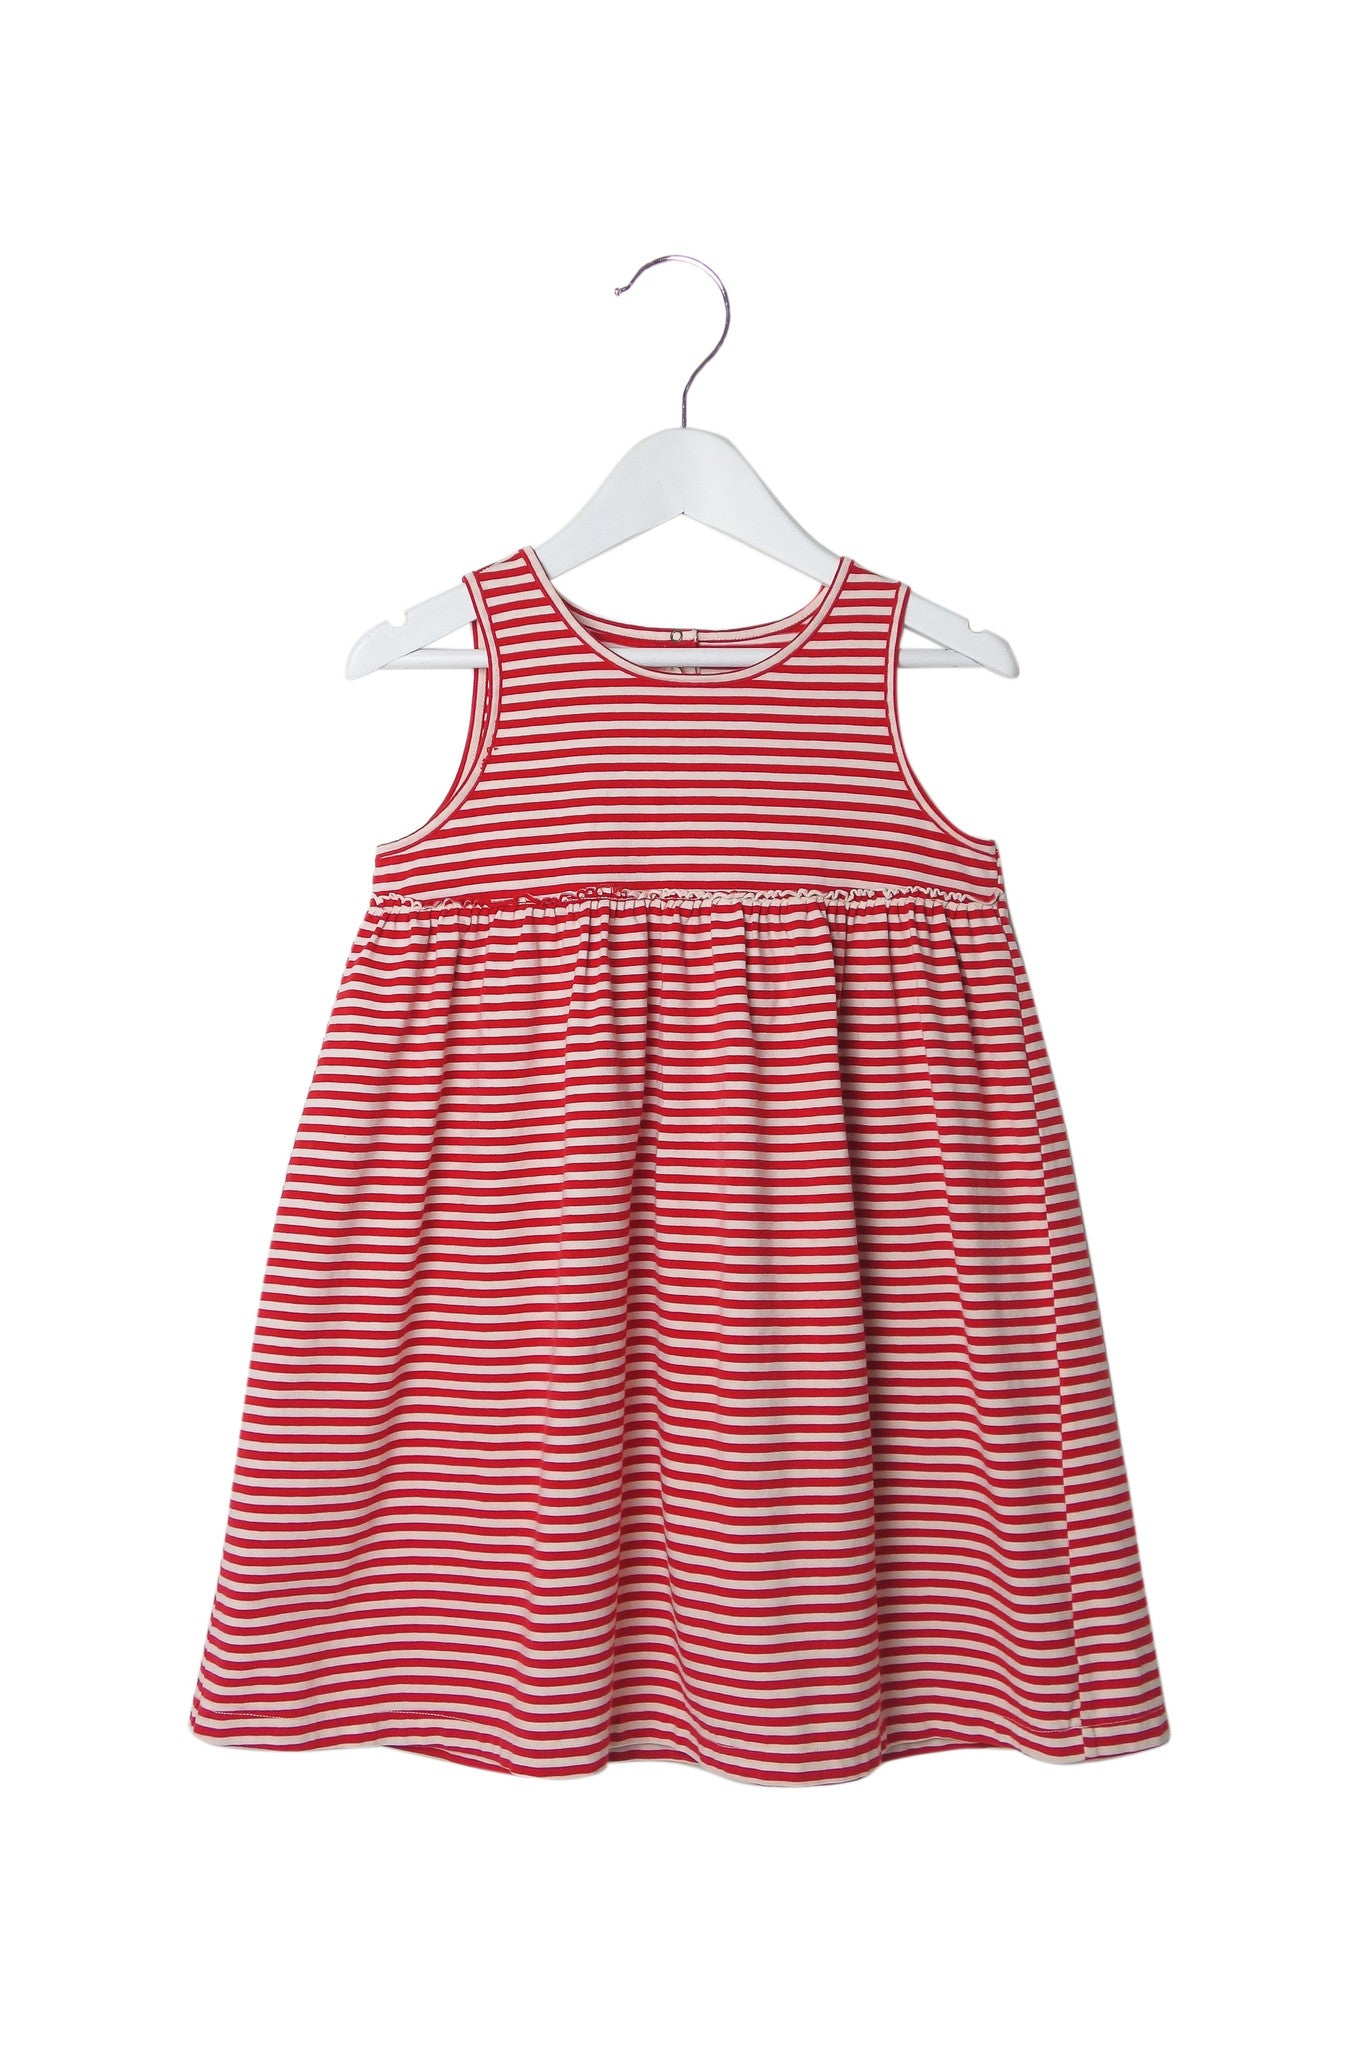 10002569 Babe & Tess Kids~Dress 6T at Retykle